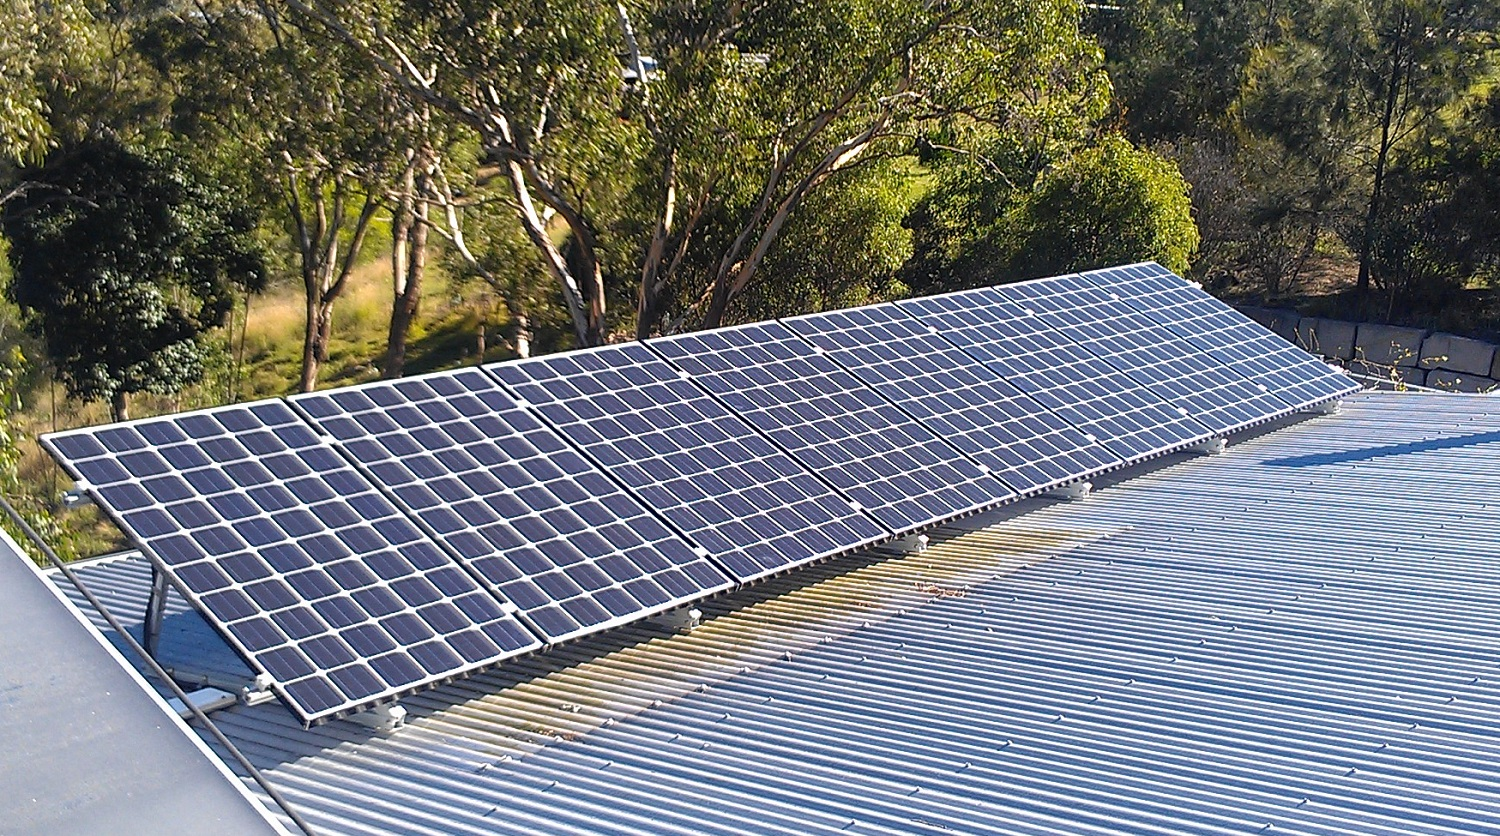 We recommend tilt frames on flat roofs for better solar output.